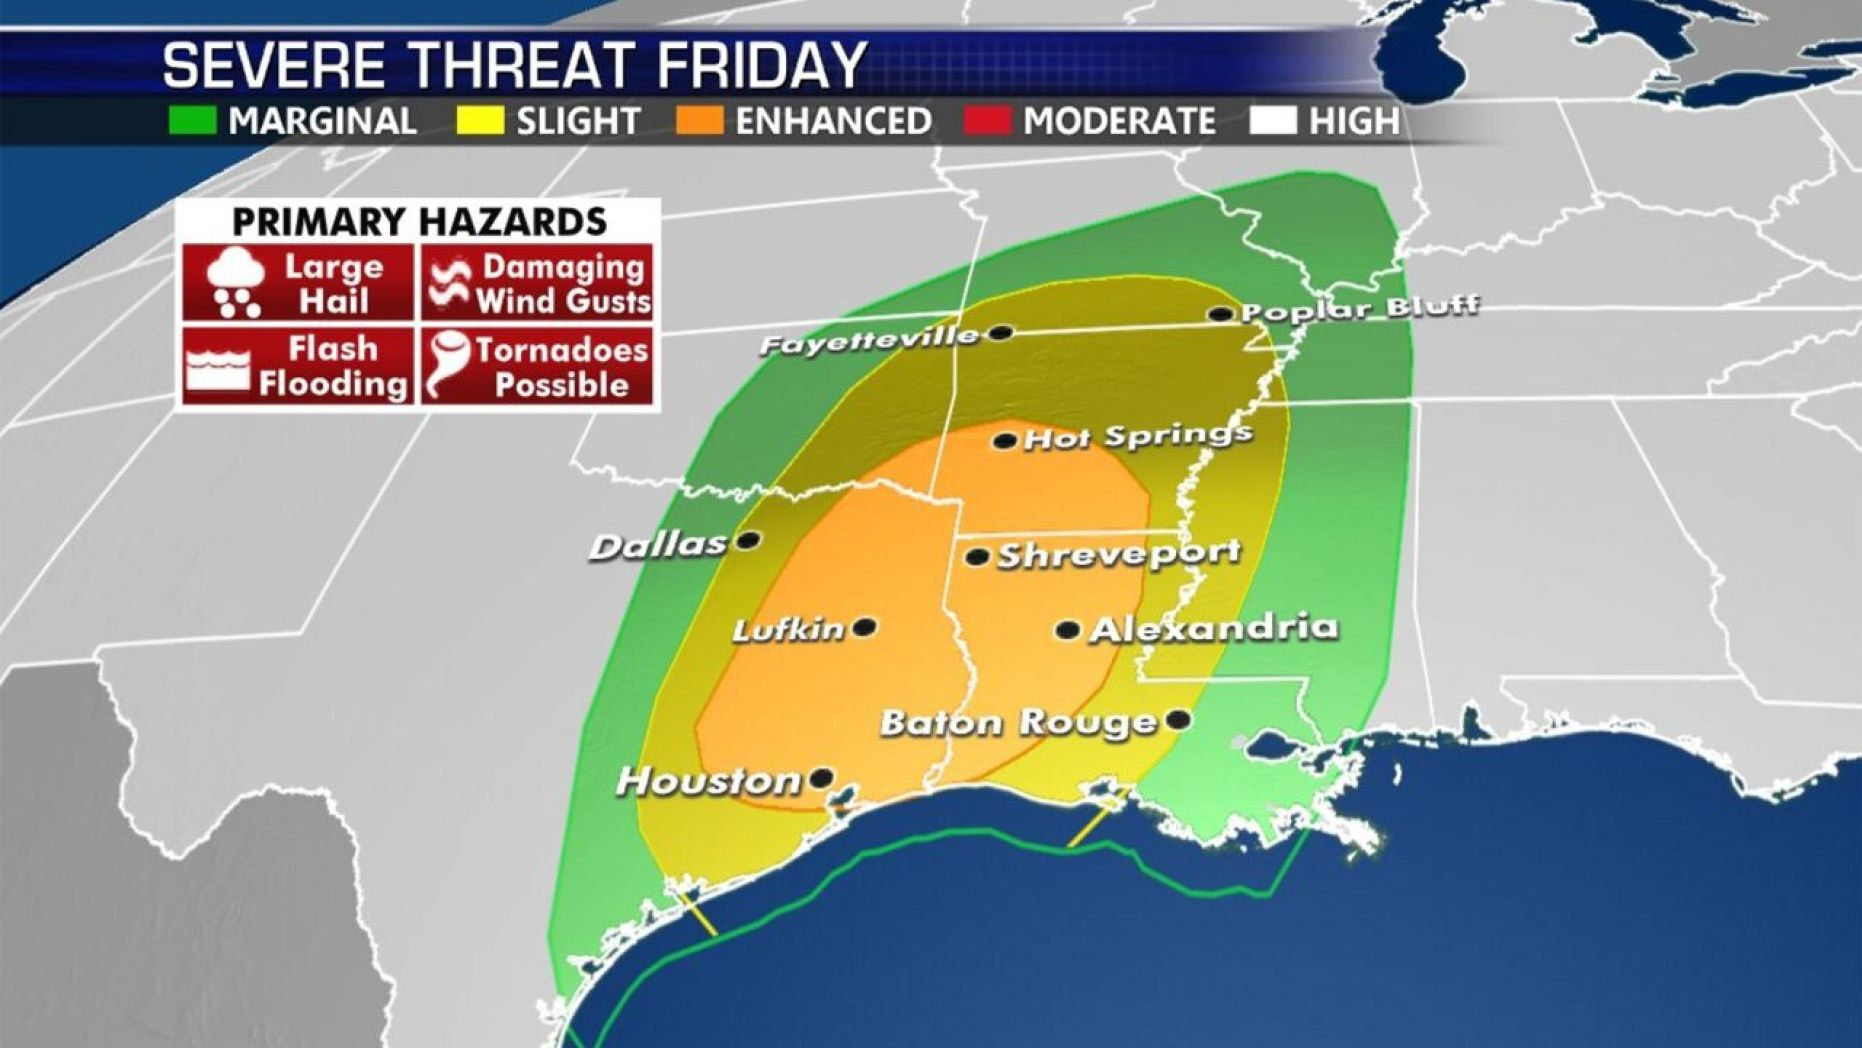 Westlake Legal Group severe-threat-friday Tornadoes hit Missouri, Oklahoma, as severe storms move east TERRY WALLACE JEFF MARTIN fox-news/us/us-regions/southwest/texas fox-news/us/us-regions/southwest/oklahoma fox-news/us/us-regions/southwest fox-news/us/us-regions/midwest/missouri fox-news/us/us-regions/midwest/arkansas fox-news/us/disasters/tornado fnc/us fnc Associated Press article 9f8e133b-1c96-5b5d-89ad-dd1d4cfc04d1